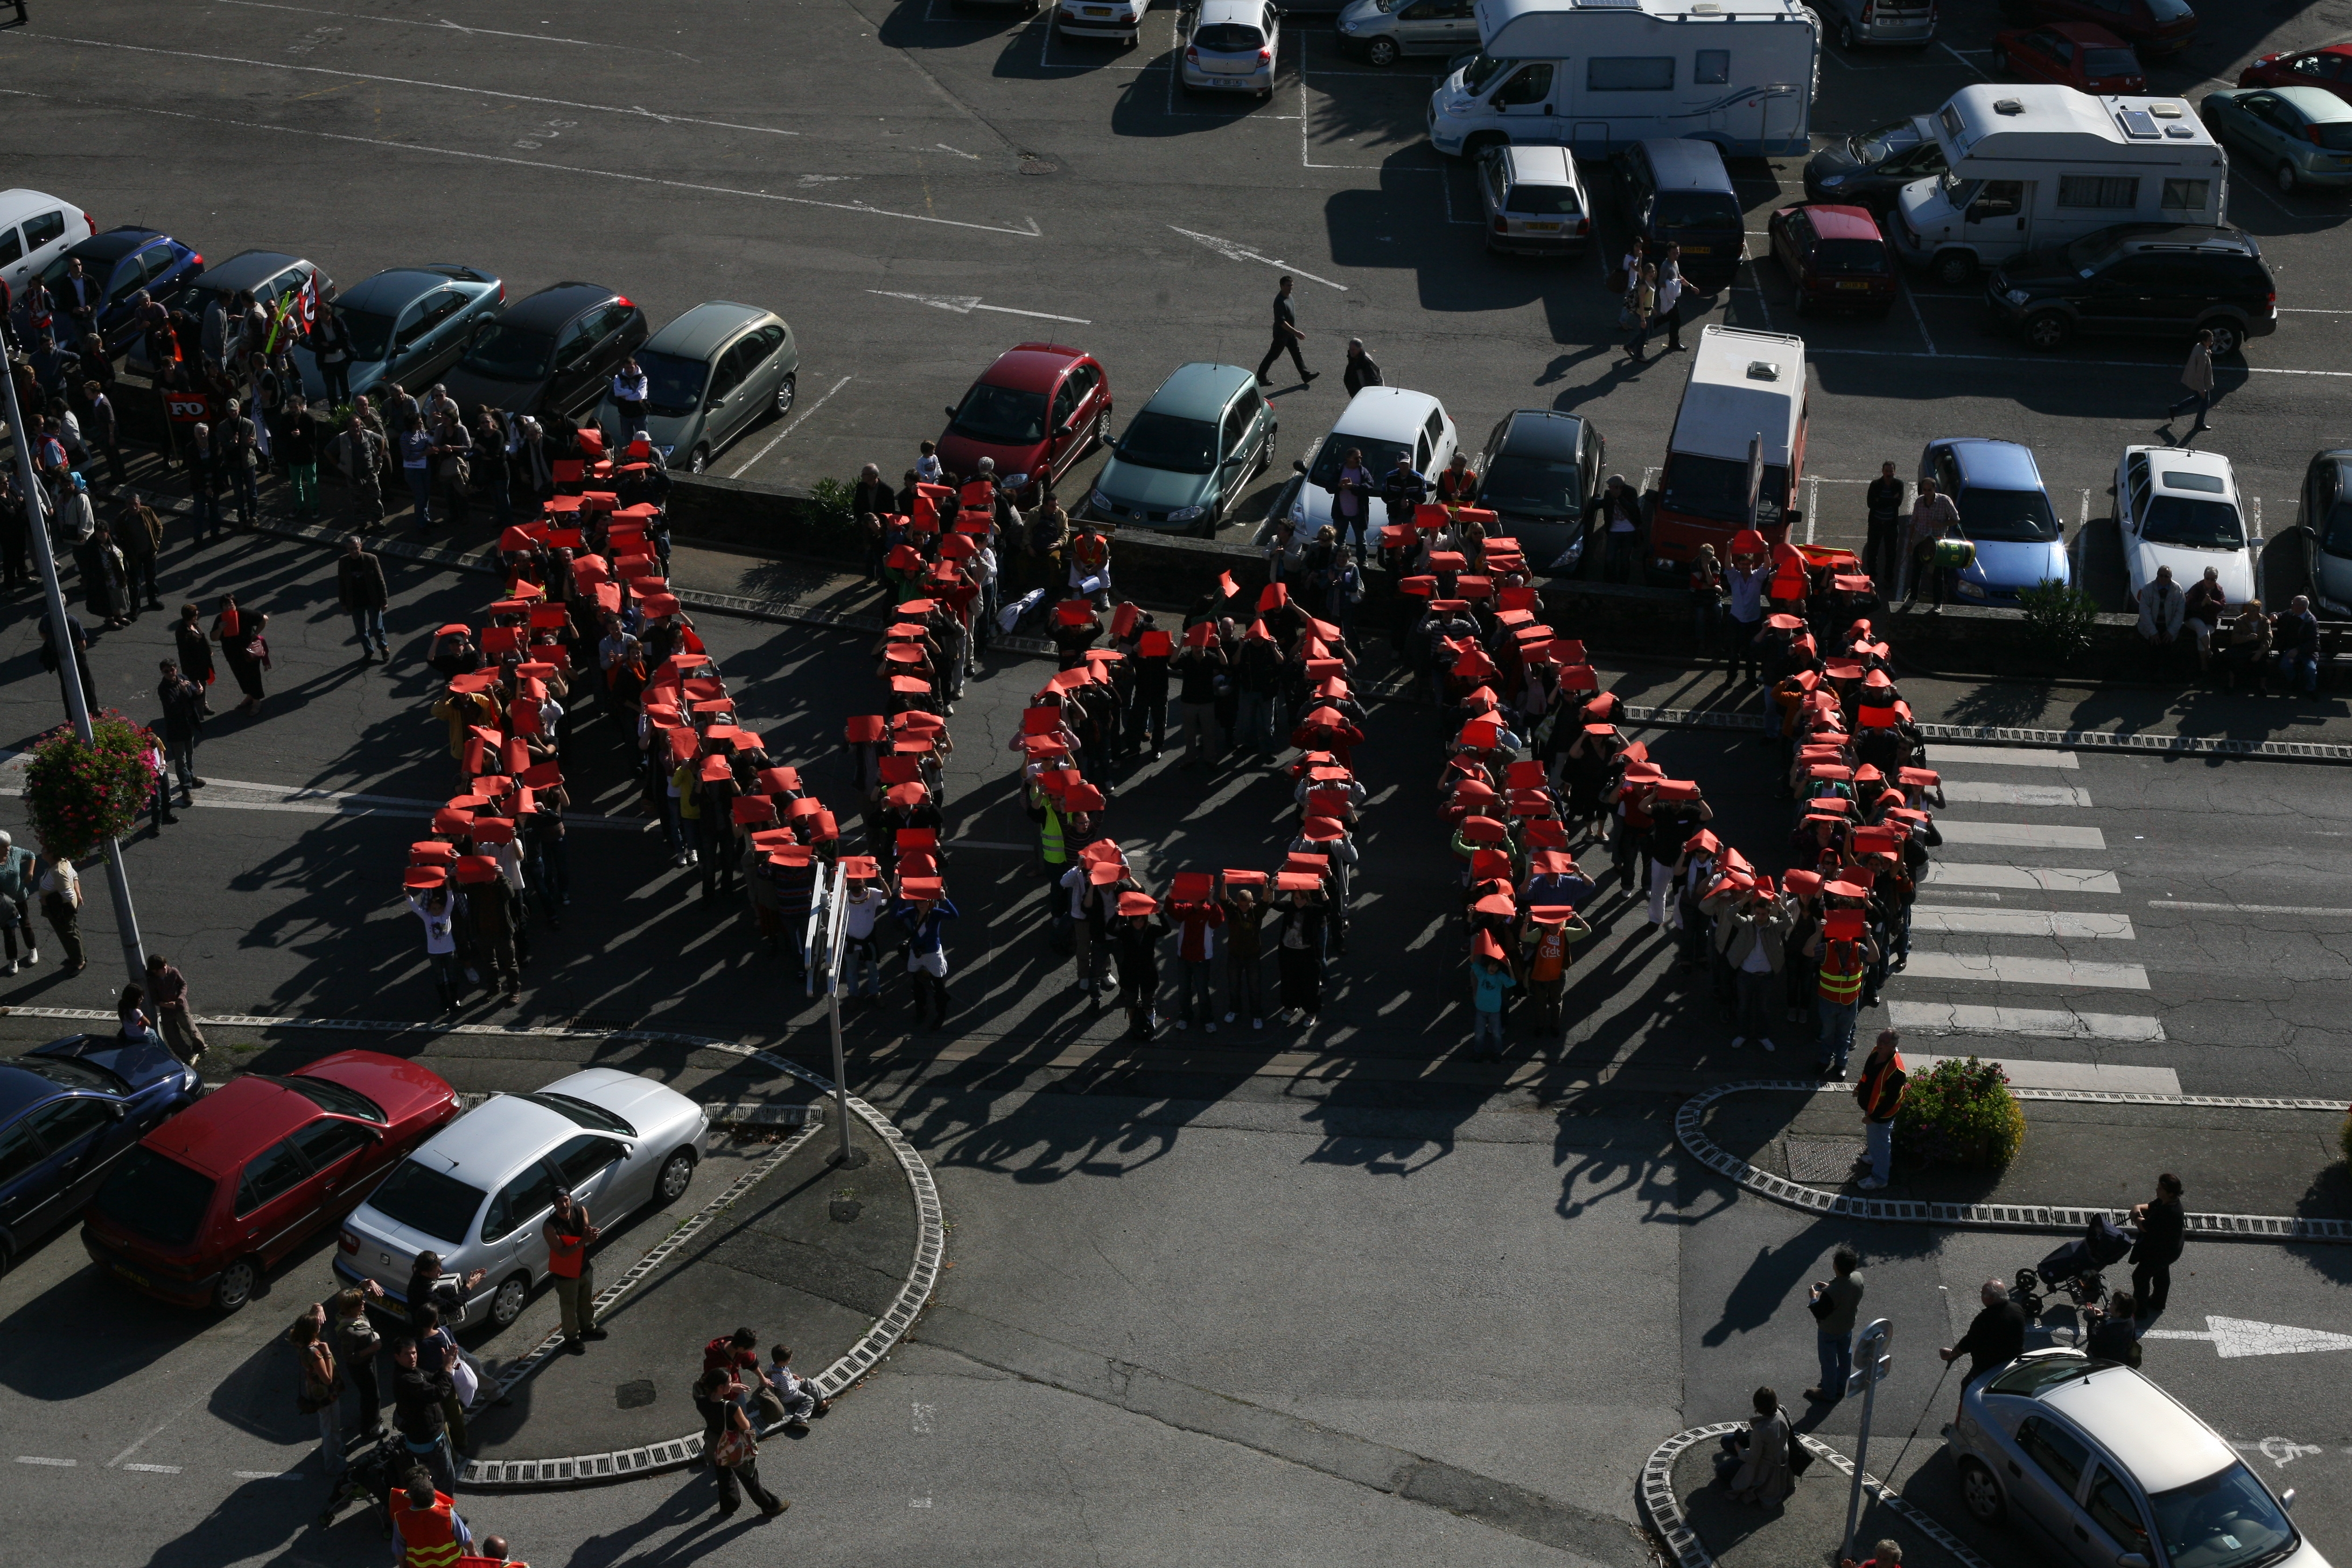 manif_1_chateaubriant_12-10-2010.JPG